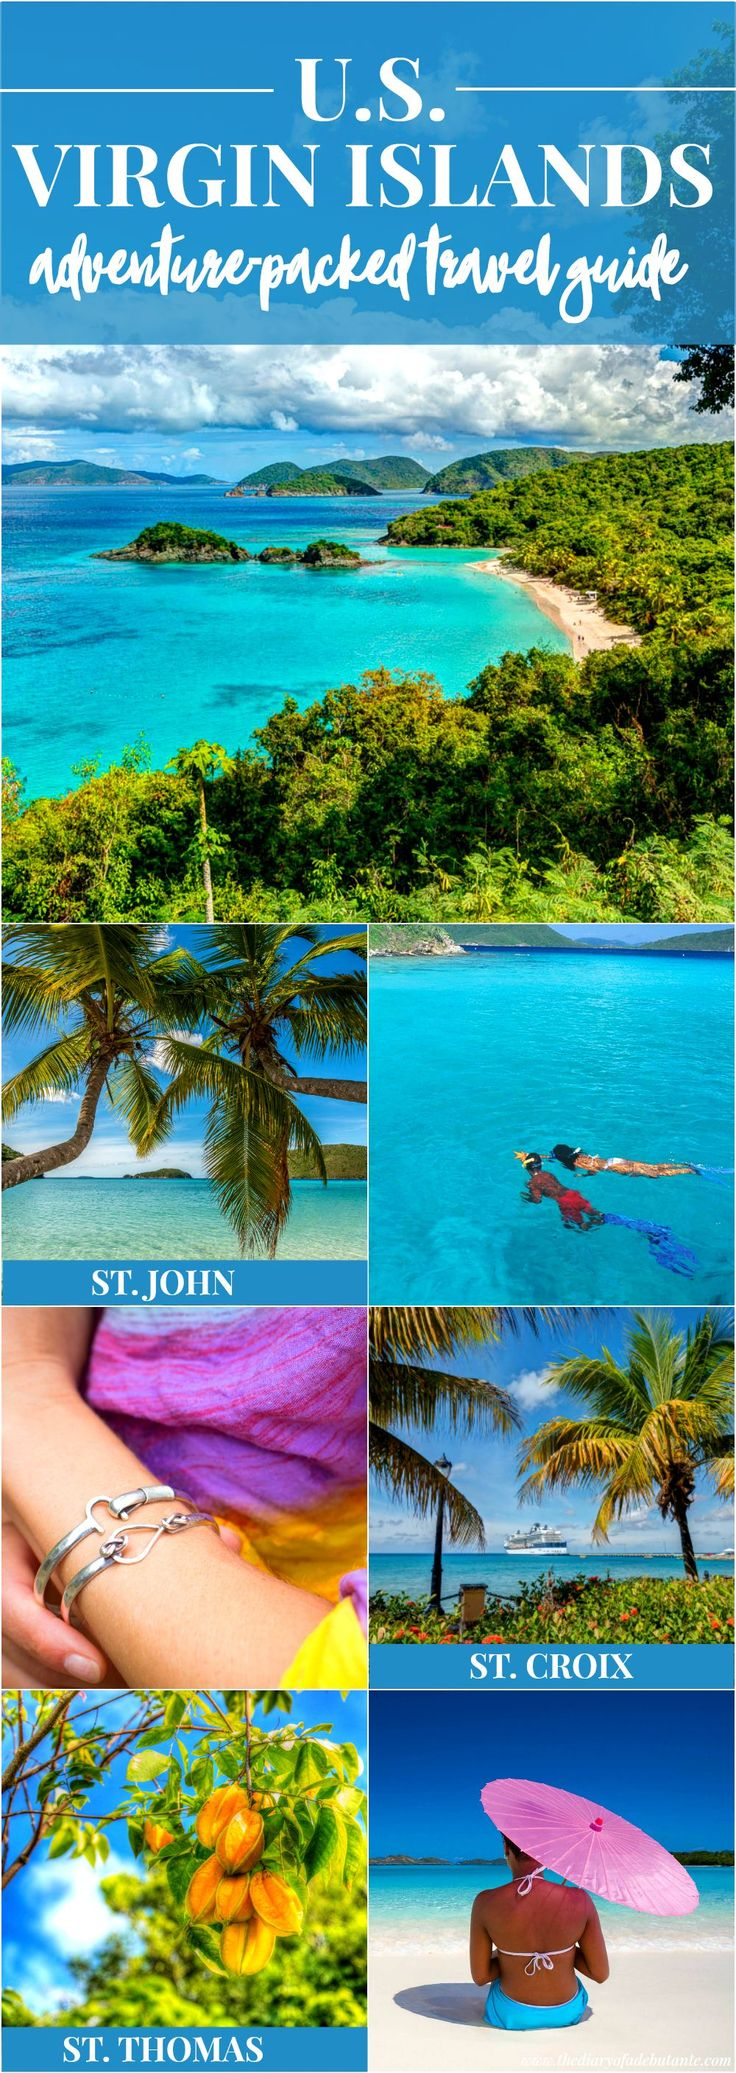 St Thomas Map Virgin Islands%0A Helpful guide to Caribbean islandhopping in the U S  Virgin Islands  If  you u    re an adventure seeker  this list of fun things to do in St  John  St   Croix